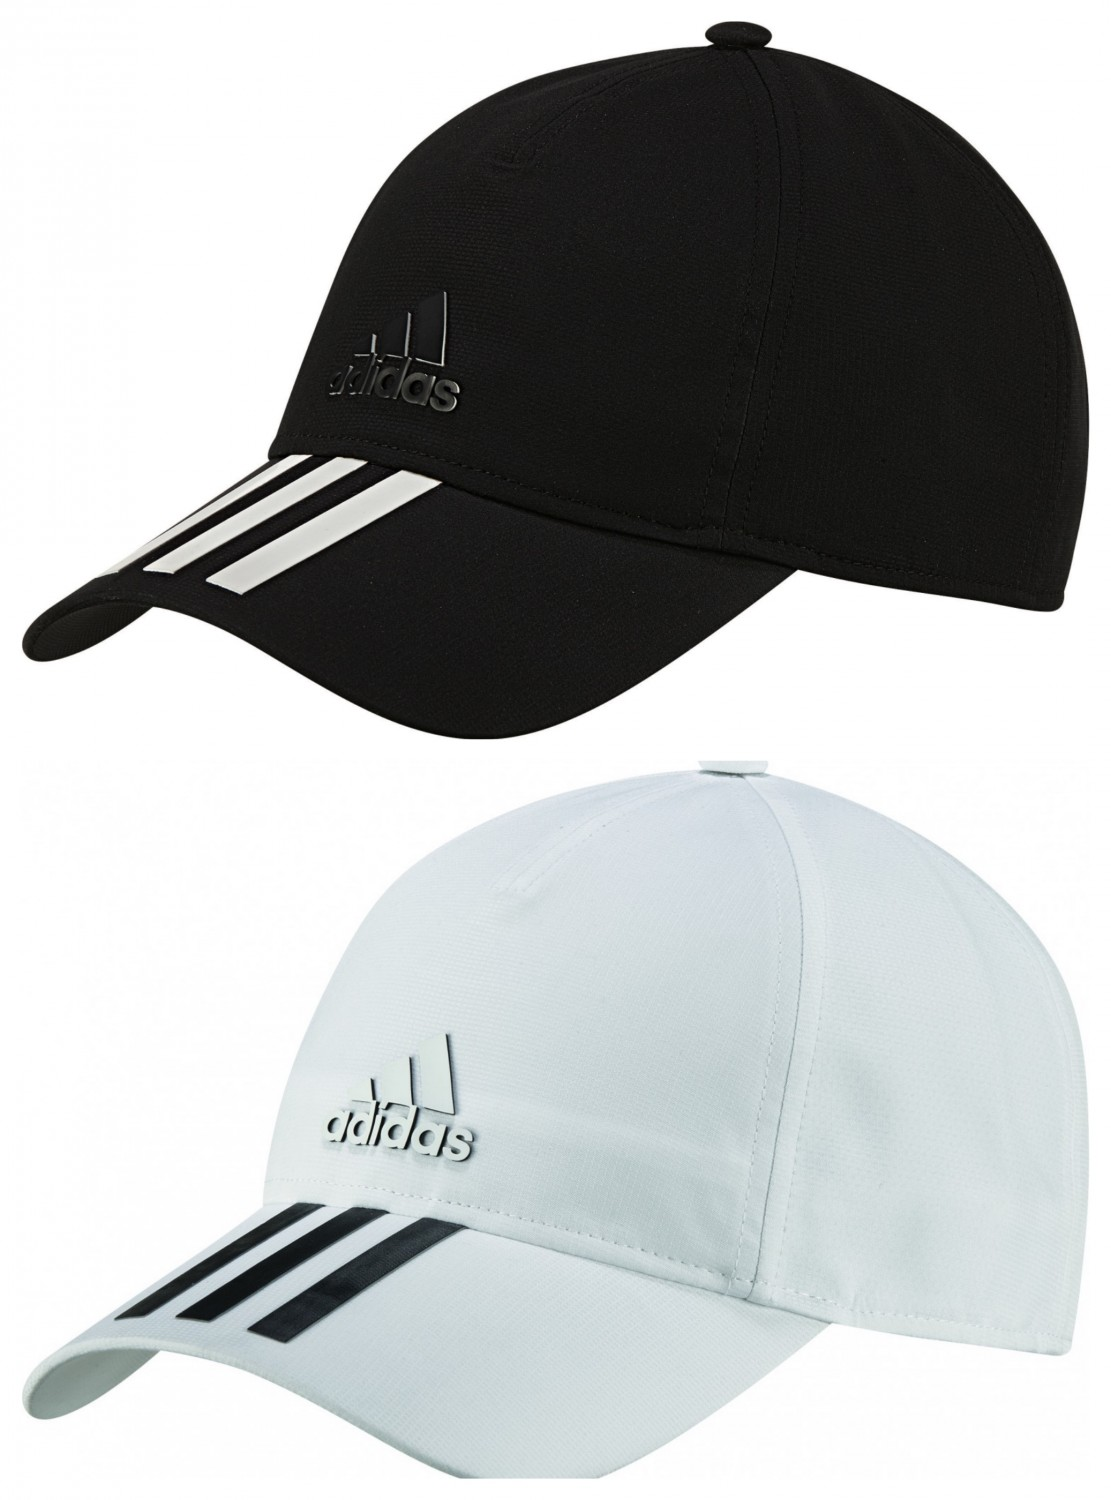 adidas classic six panel climalite 3s cap baseball cap damen kinder herren. Black Bedroom Furniture Sets. Home Design Ideas